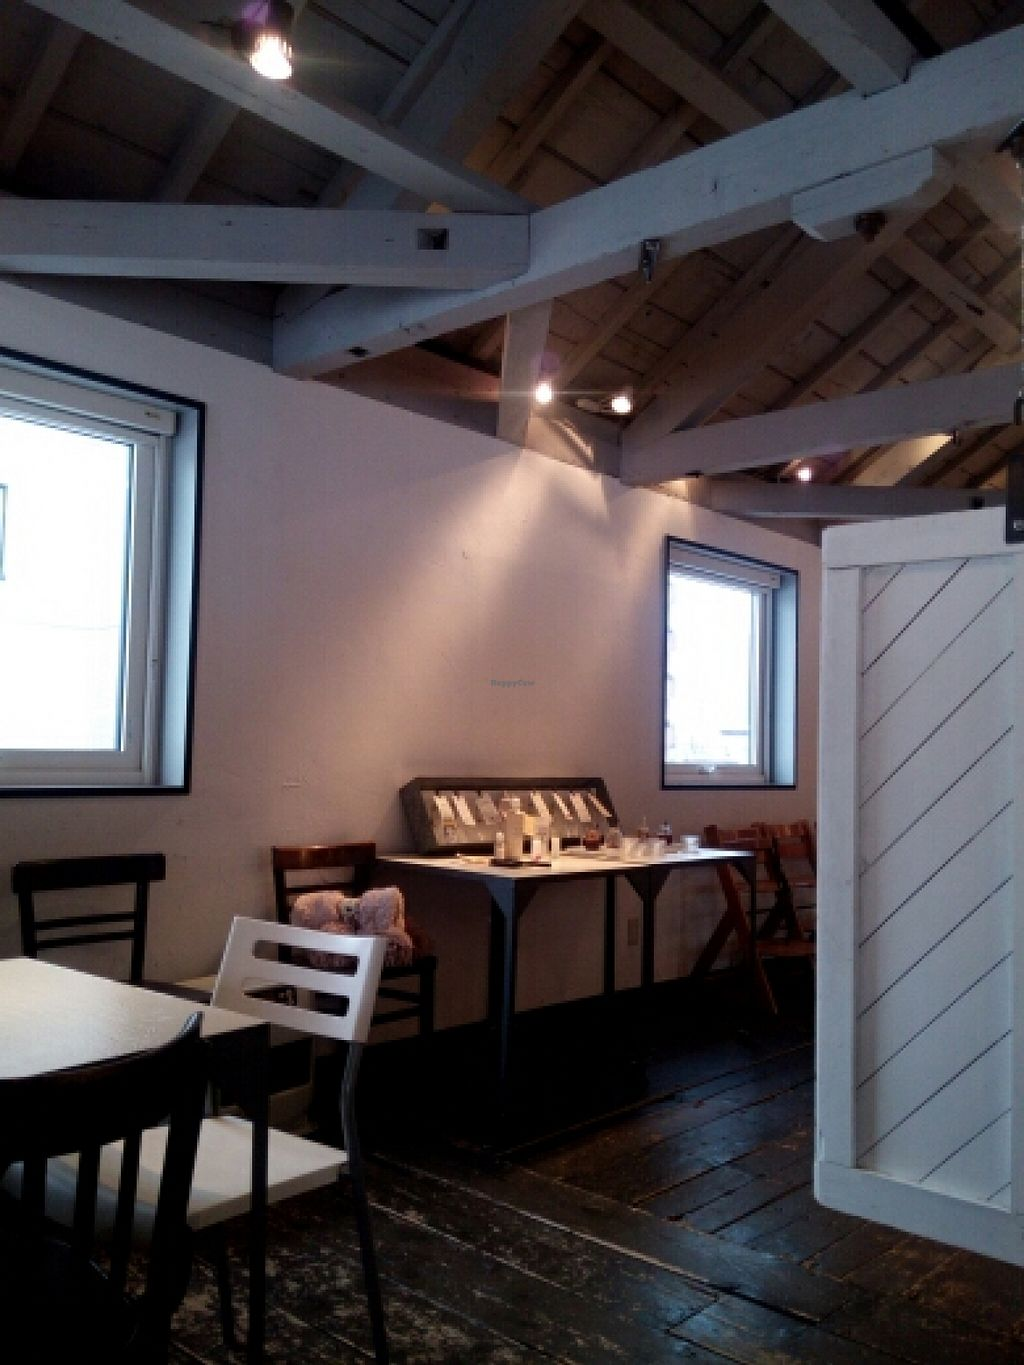 """Photo of Hibino Cafe AGT  by <a href=""""/members/profile/freesiaoriental"""">freesiaoriental</a> <br/>Old farmhouse-type interiors <br/> February 12, 2016  - <a href='/contact/abuse/image/48828/135945'>Report</a>"""